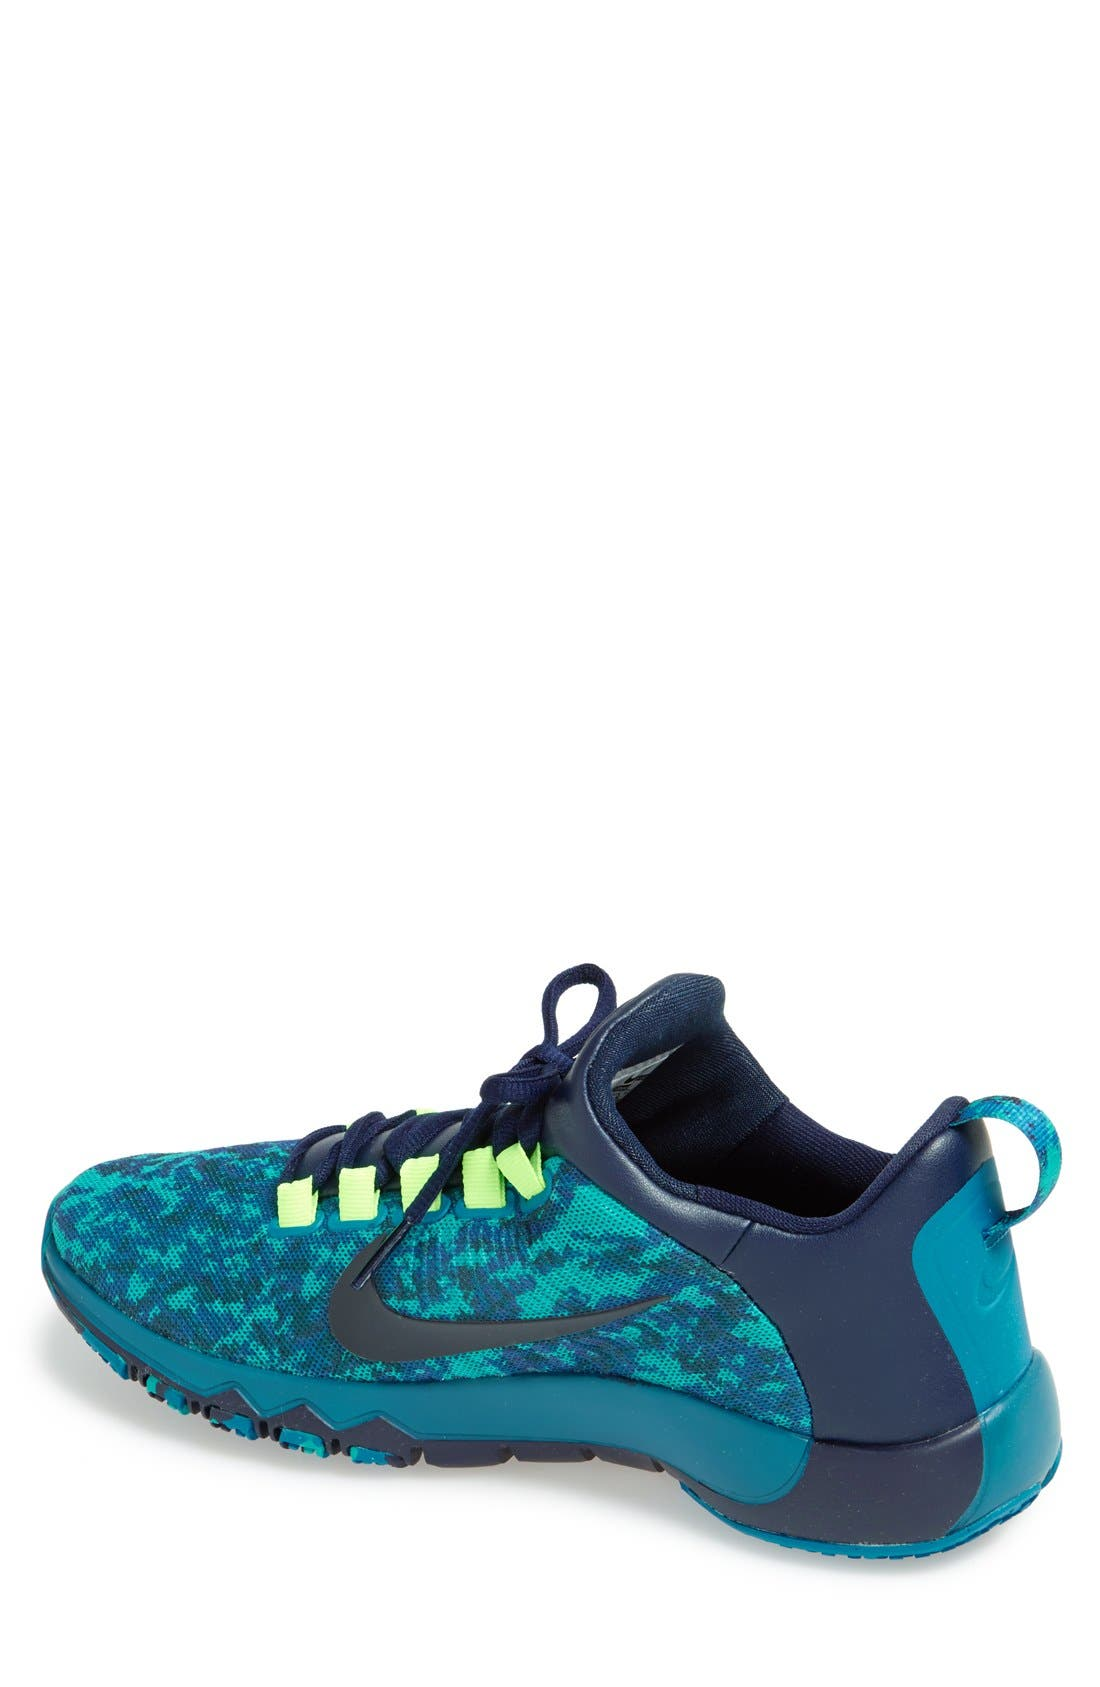 Alternate Image 2  - Nike 'Free Trainer 5.0 NRG' Training Shoe (Men)